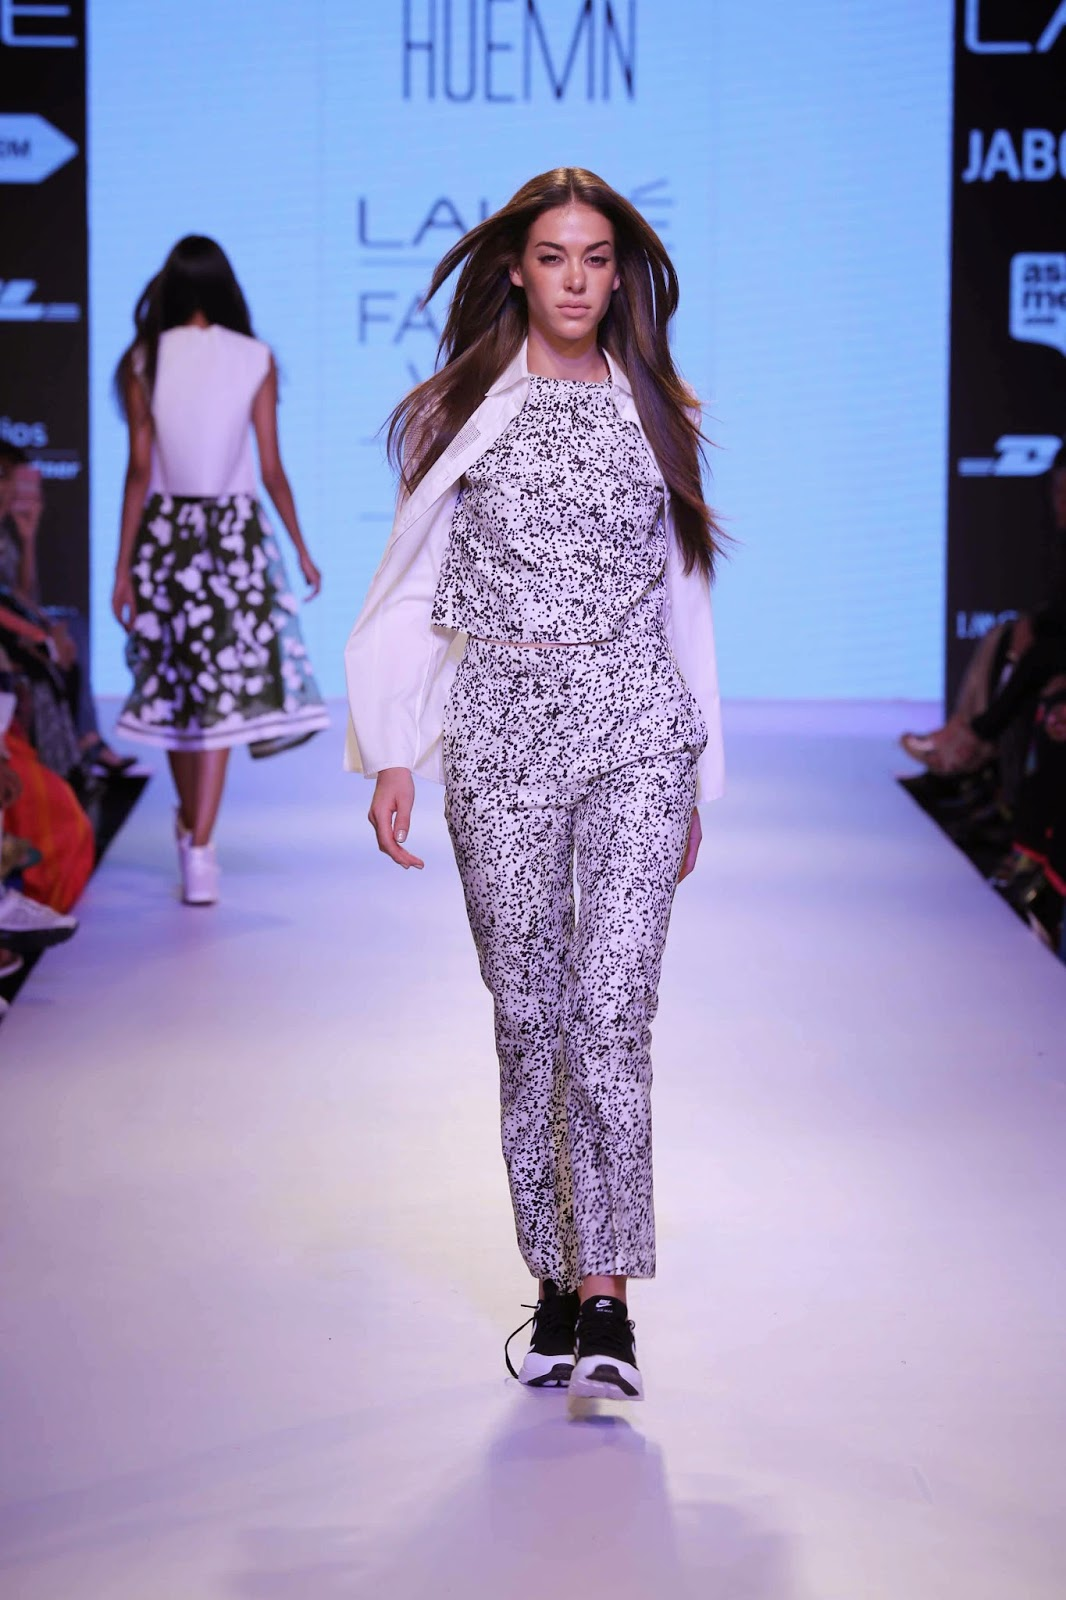 http://aquaintperspective.blogspot.in/, LIFW day 1, Huemn by Pranav Mishra  and Shyama Shetty